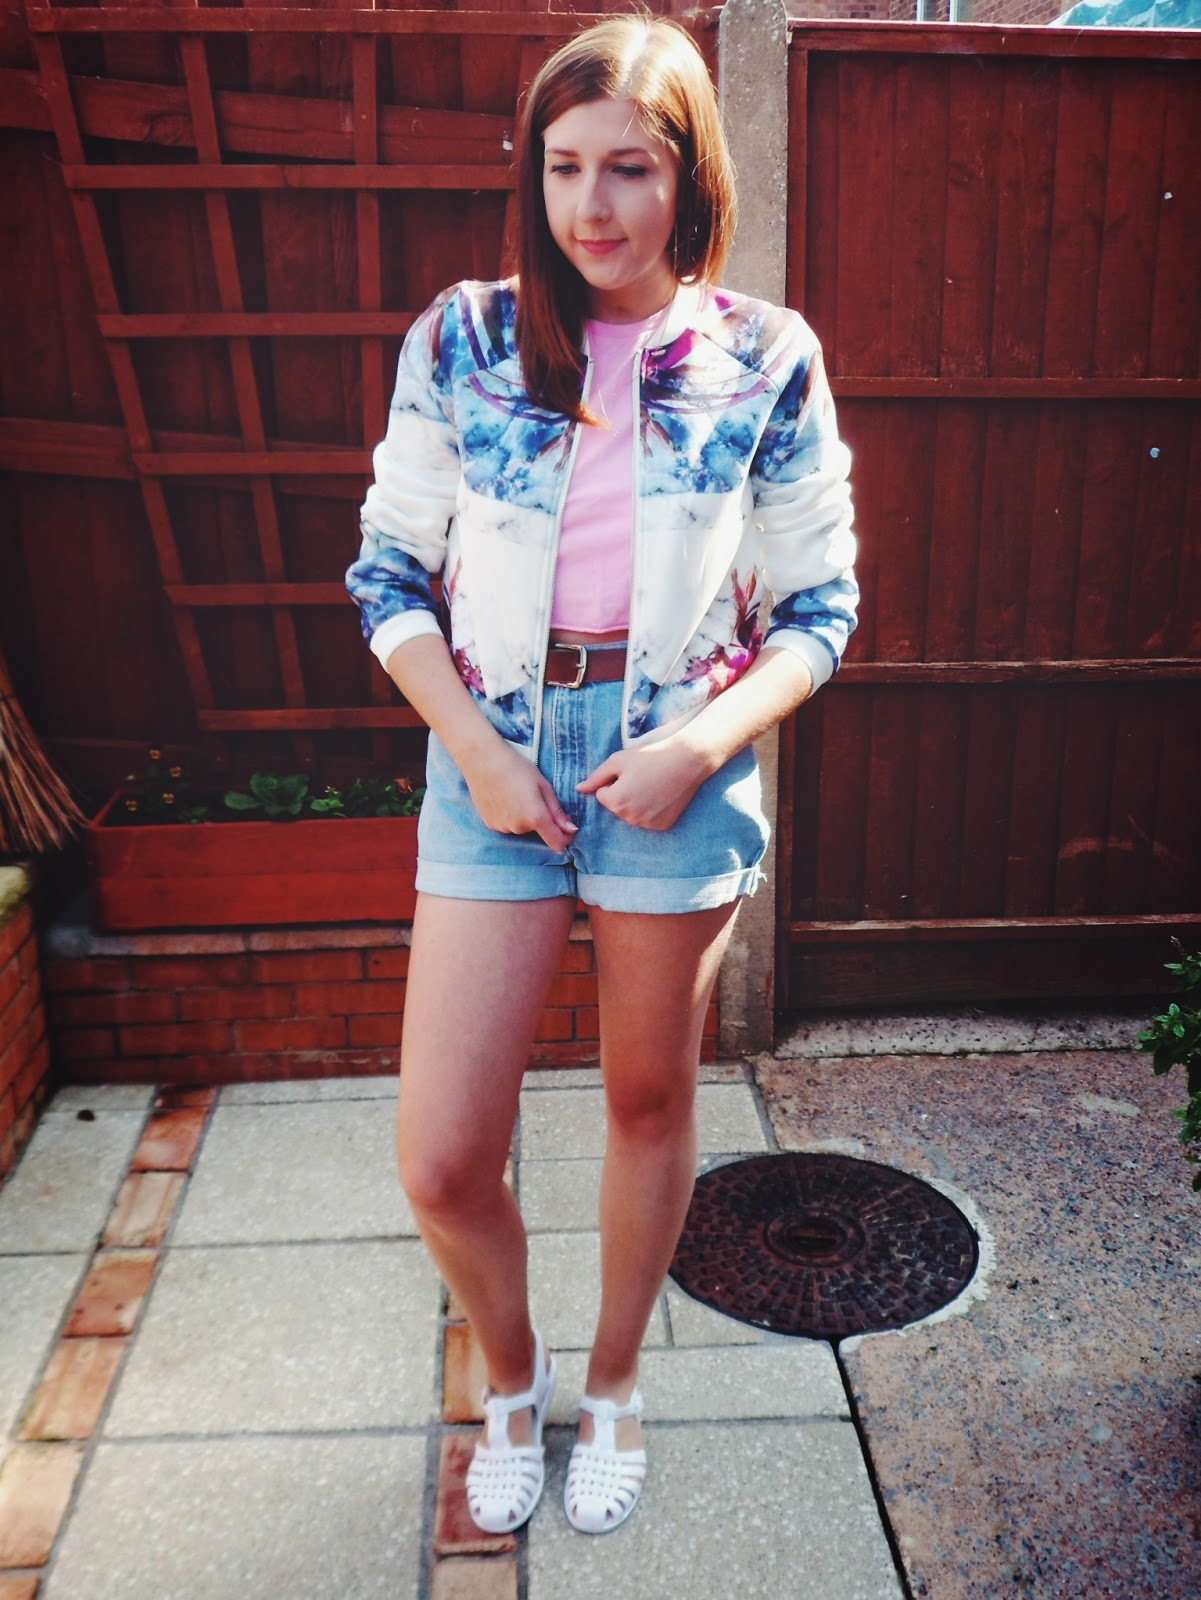 asseenonme, wiw, whatimwearing, missguided, bomberjacket, asos, fbloggers, fblogger, whatibought, levishorts, momshorts, ebay, jellyshoes, newlook, summer, ootd, outfitoftheday